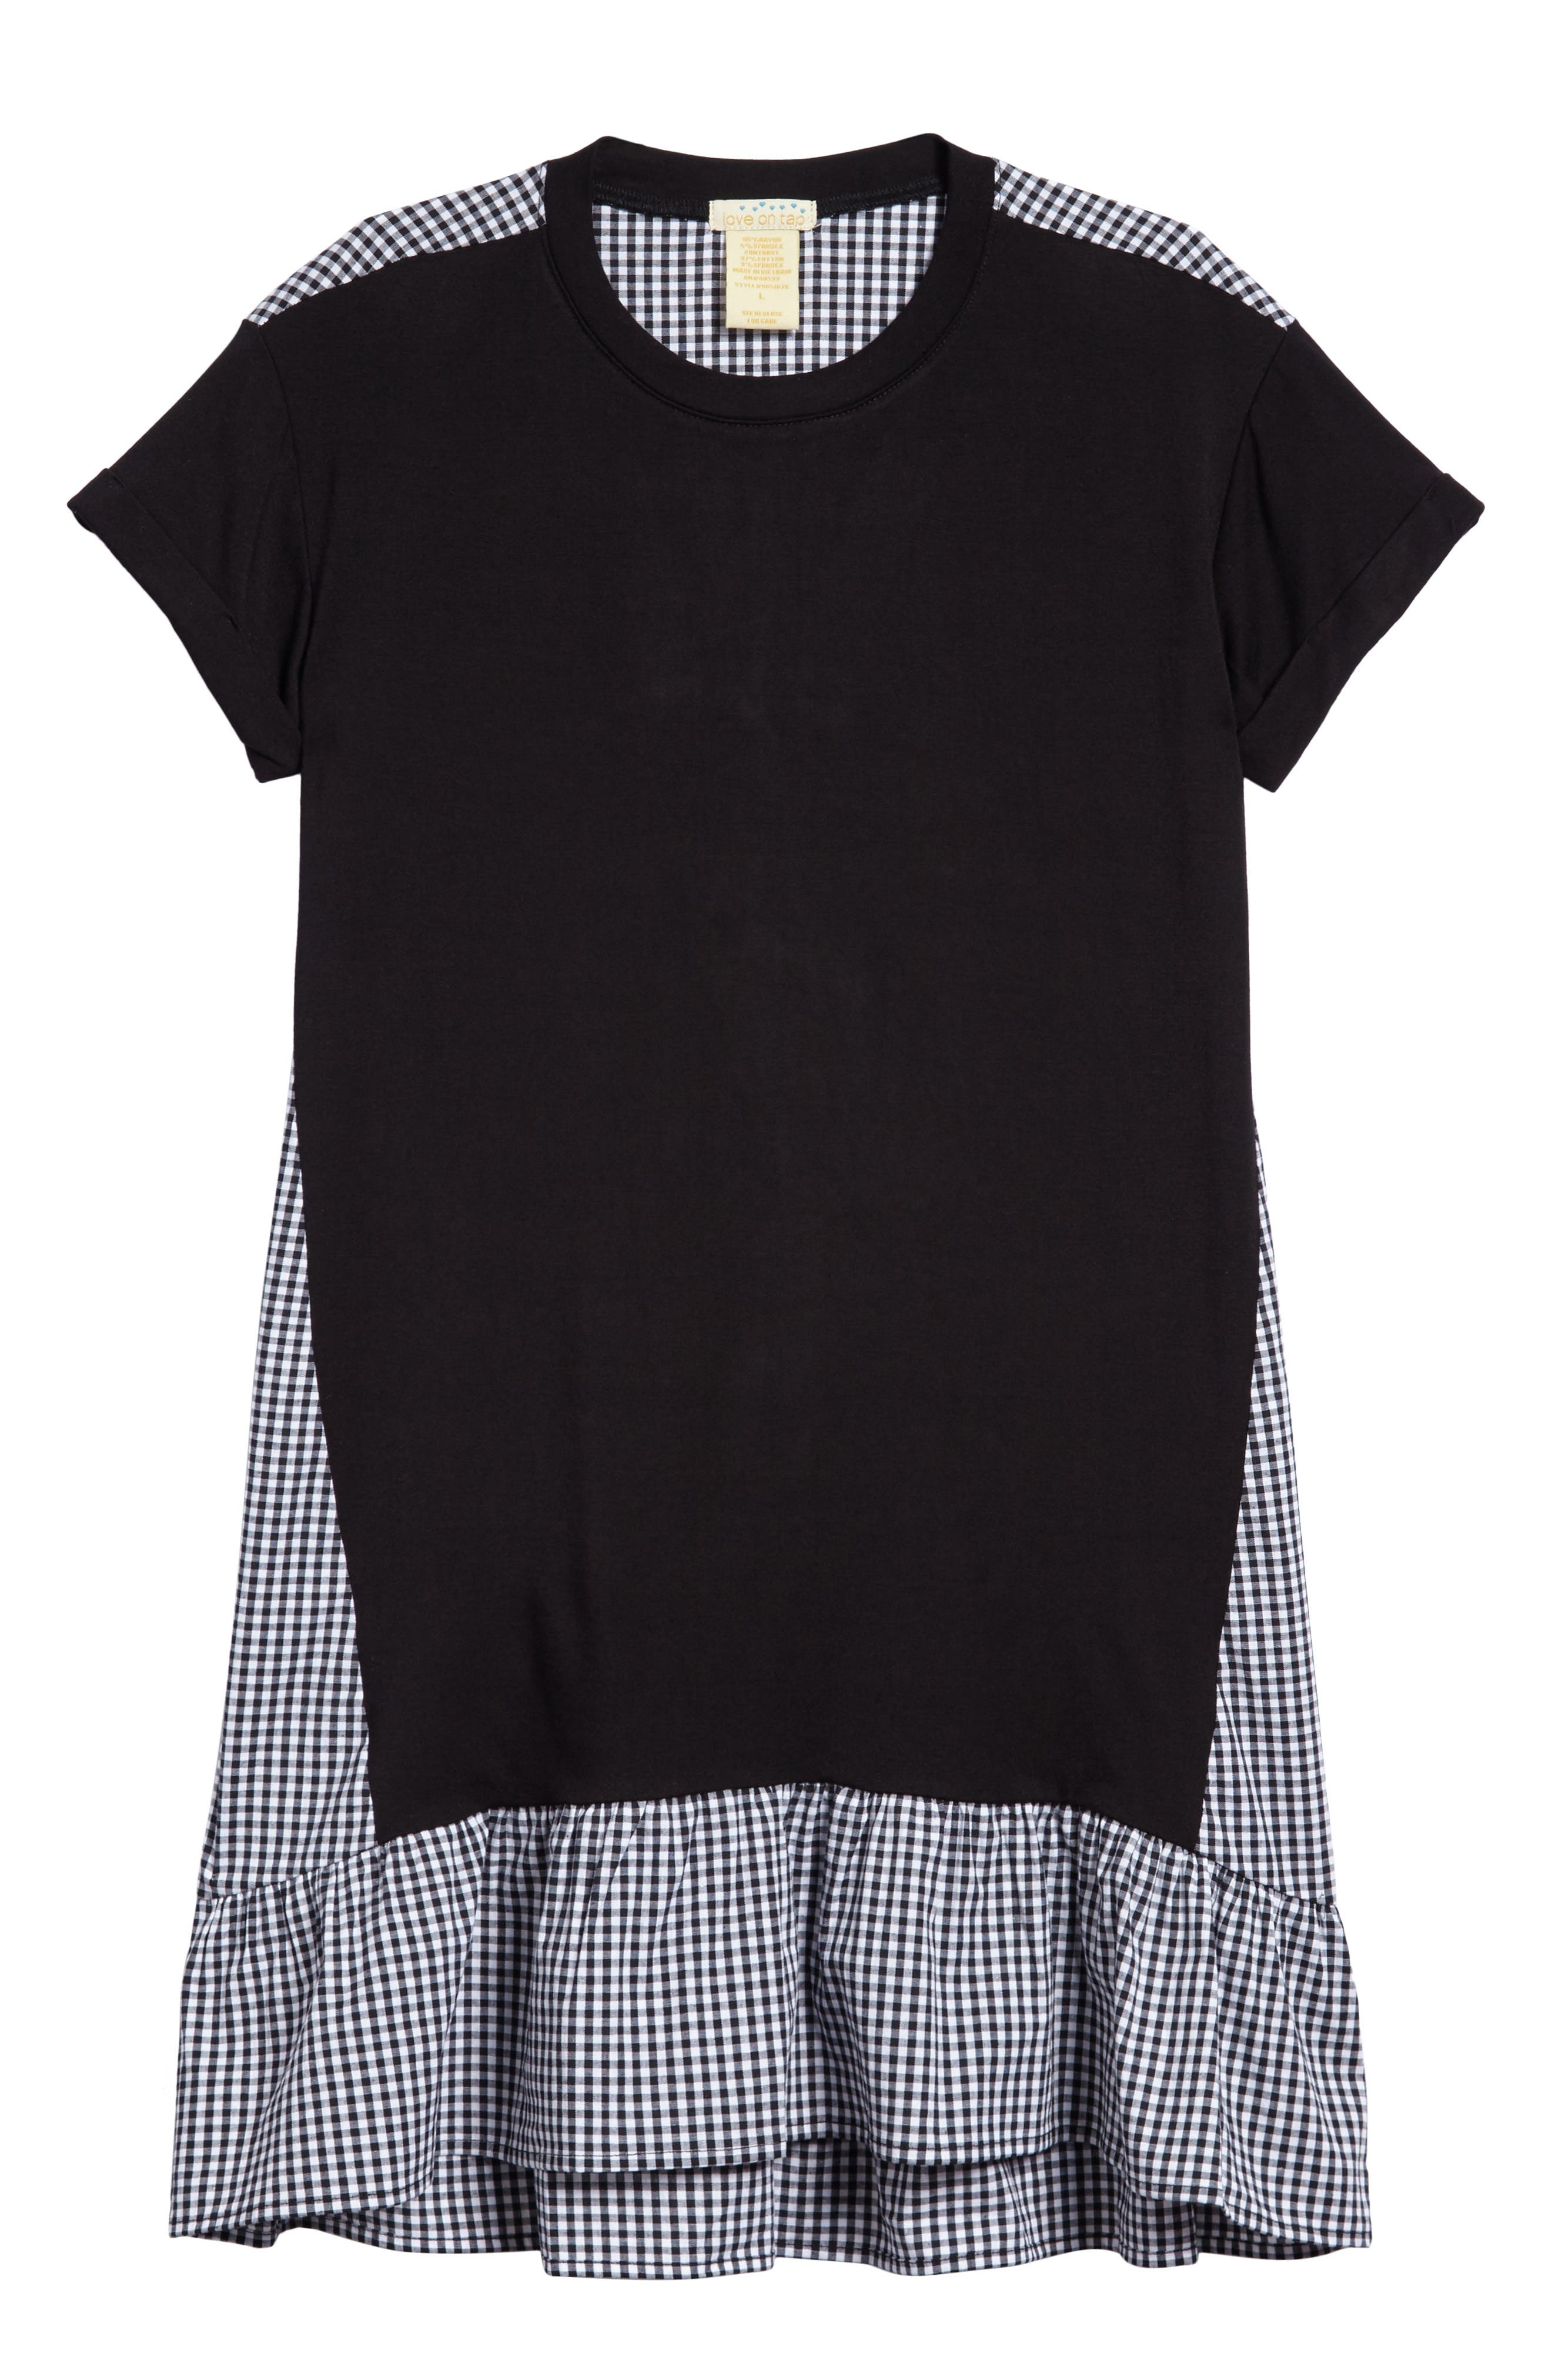 T-Shirt Dress,                             Main thumbnail 1, color,                             Blk/ White